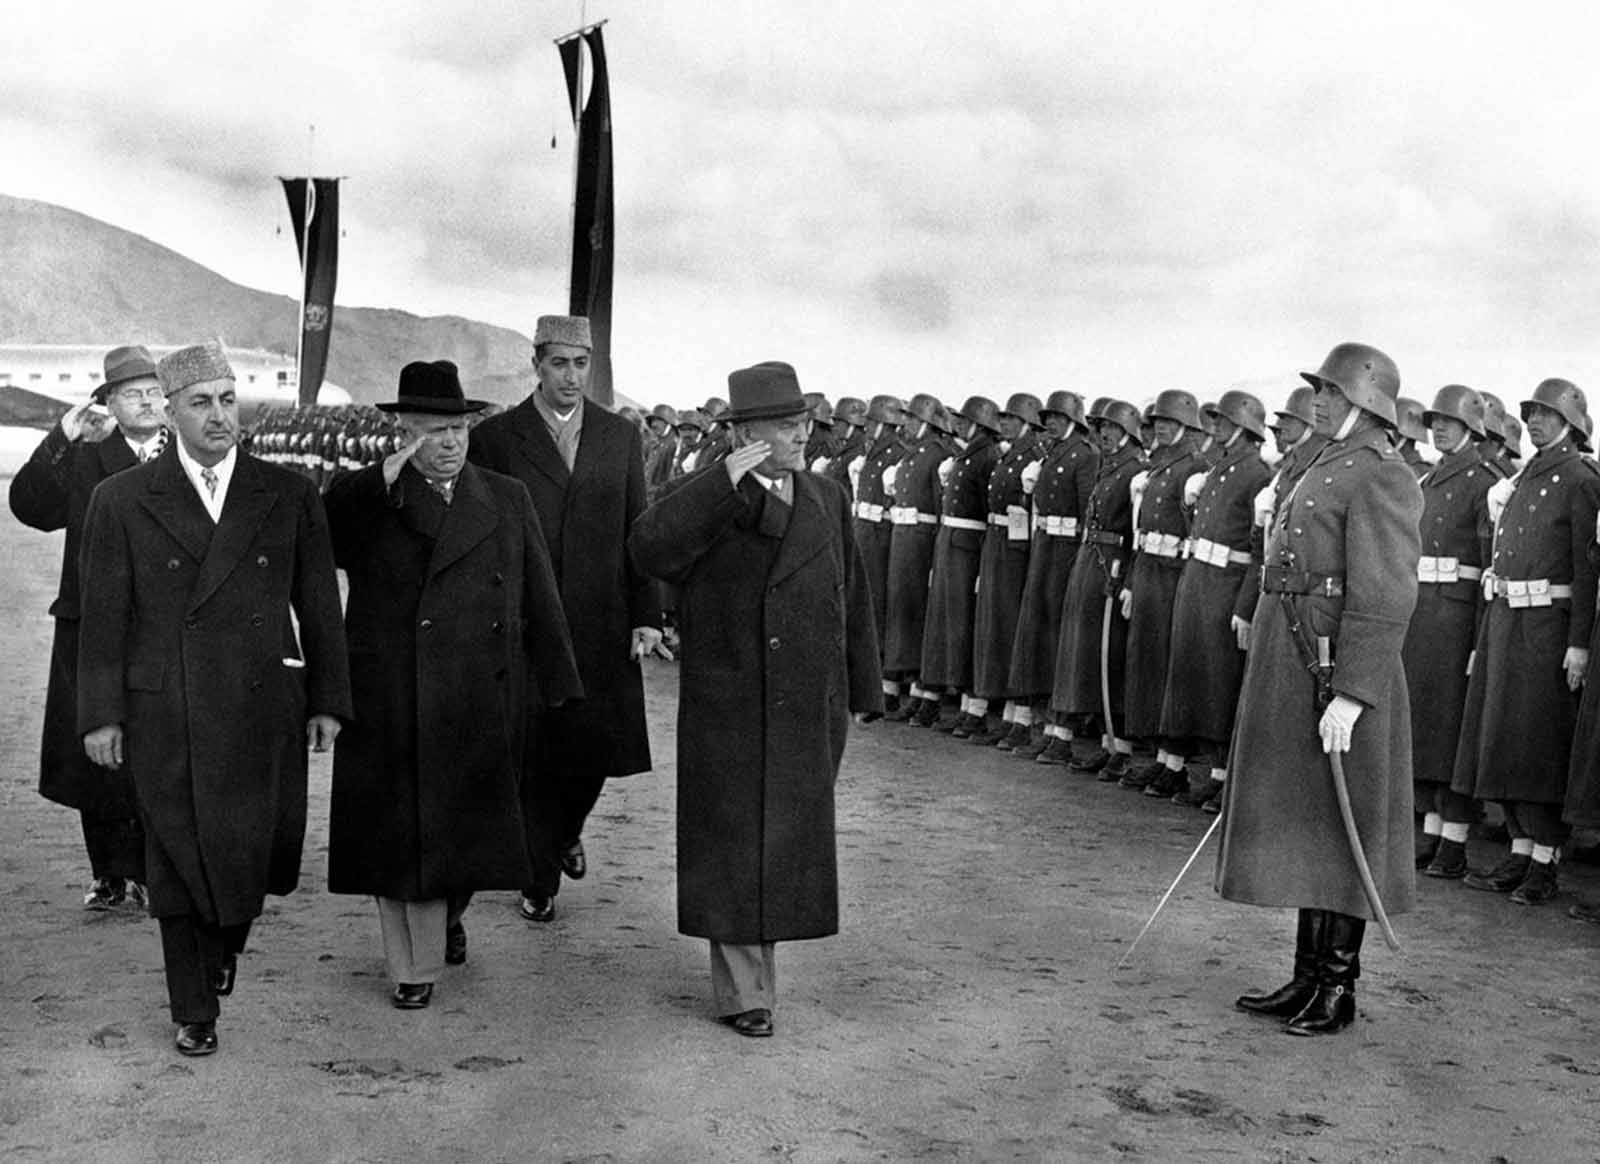 Soviet leader Nikita Khrushchev (black hat), and Marshal Nikolai Bulganin review an Afghan honor guard wearing old German uniforms, on their arrival in Kabul, Afghanistan, on December 15, 1955. At left is the Afghan Prime Minister Sardar Mohammed Daud Khan, and behind, in cap, the foreign minister, Prince Naim.